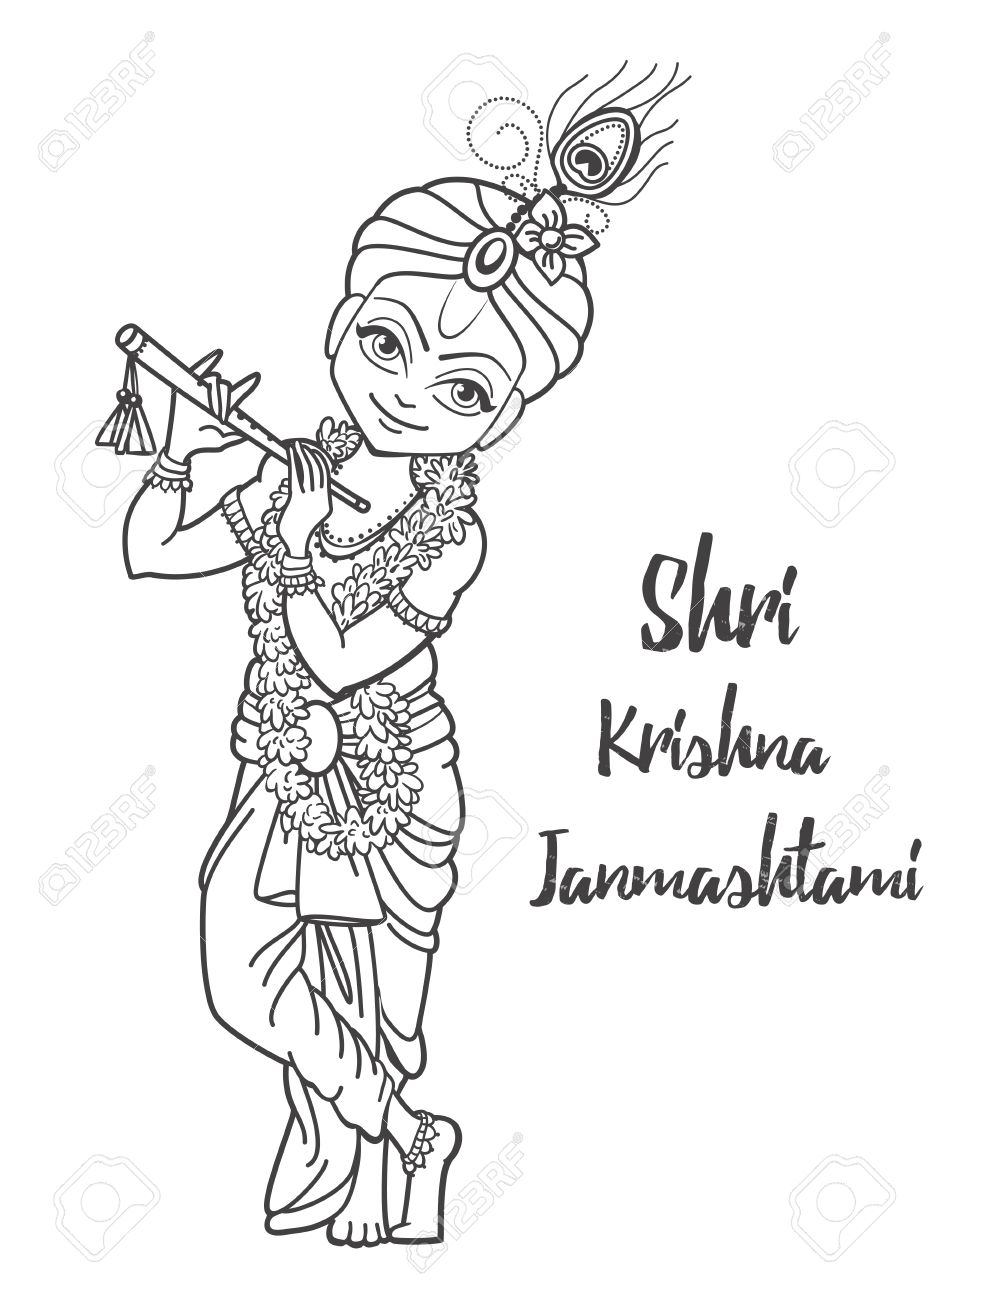 1000x1300 Ornament Card With Lord Shri Krishna Birthday. Illustration